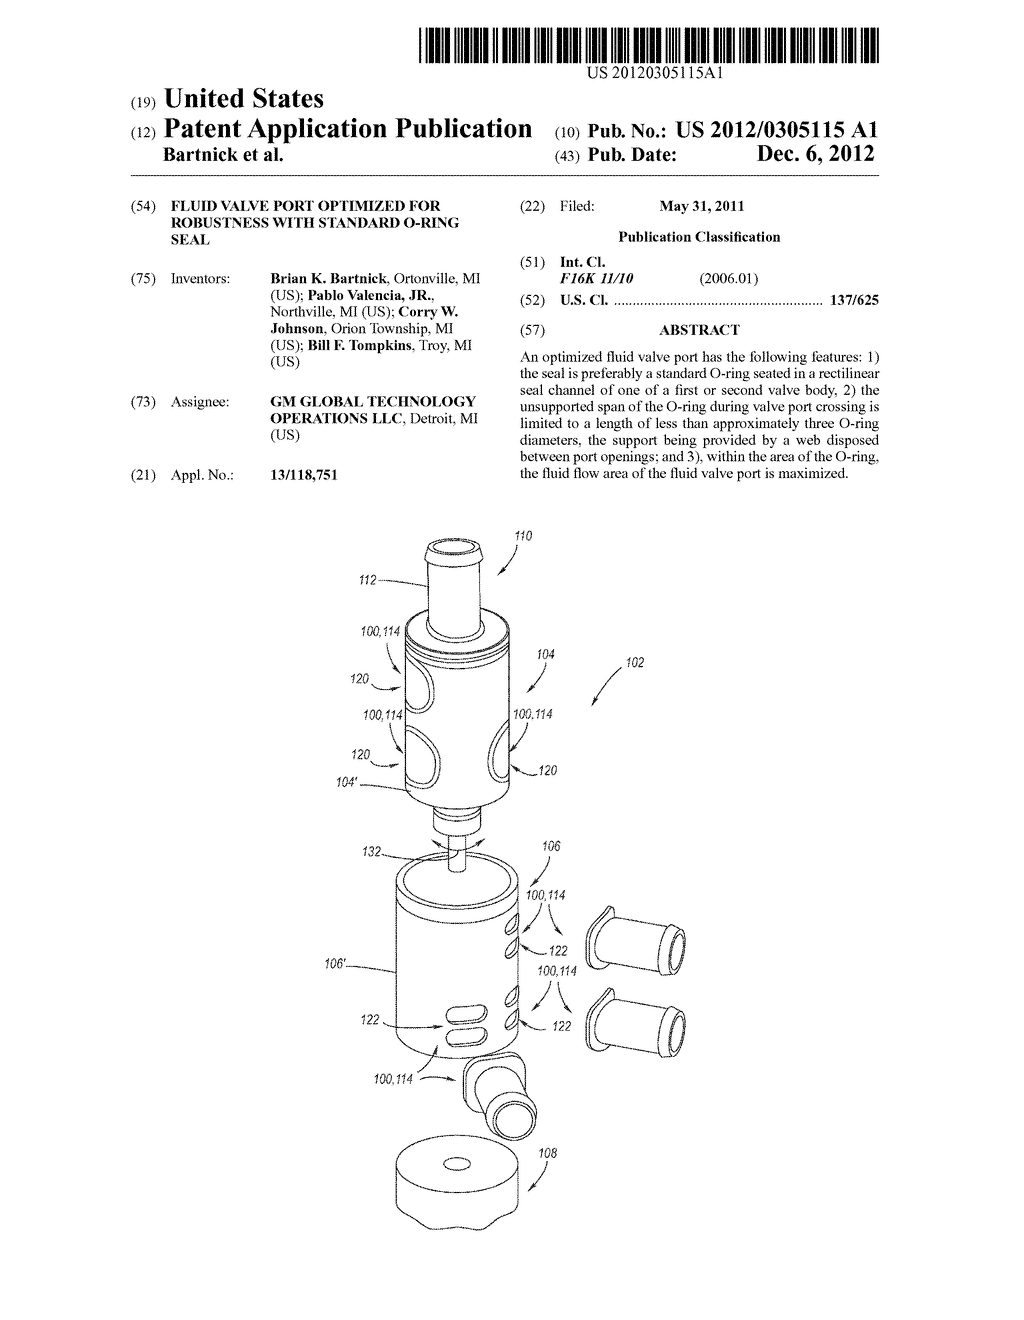 Fluid Valve Port Optimized for Robustness with Standard O-Ring Seal - diagram, schematic, and image 01